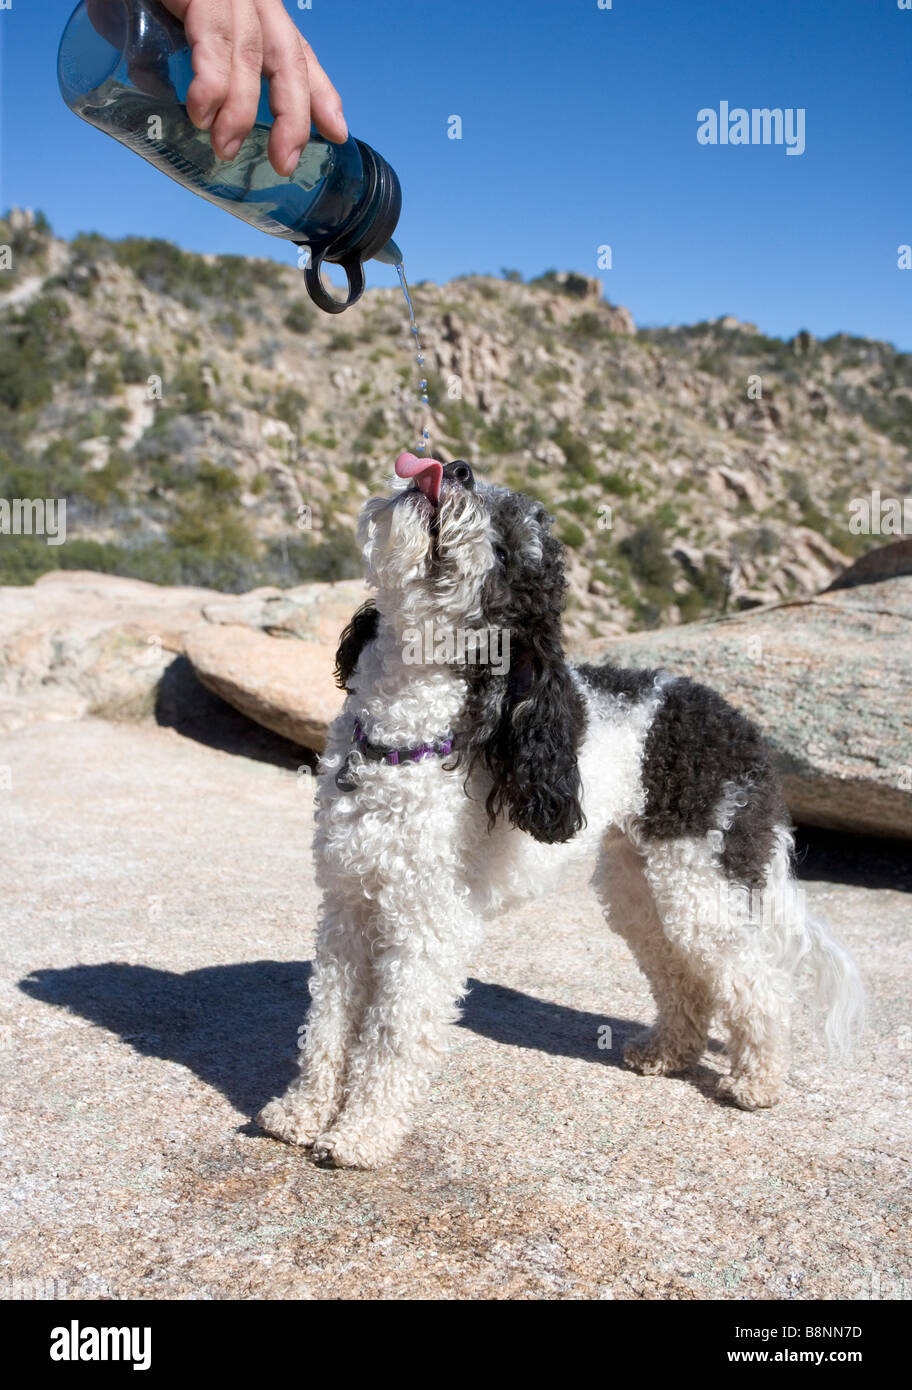 A dog taken on a desert hike drinking from water pouring from his master's water bottle - Stock Image